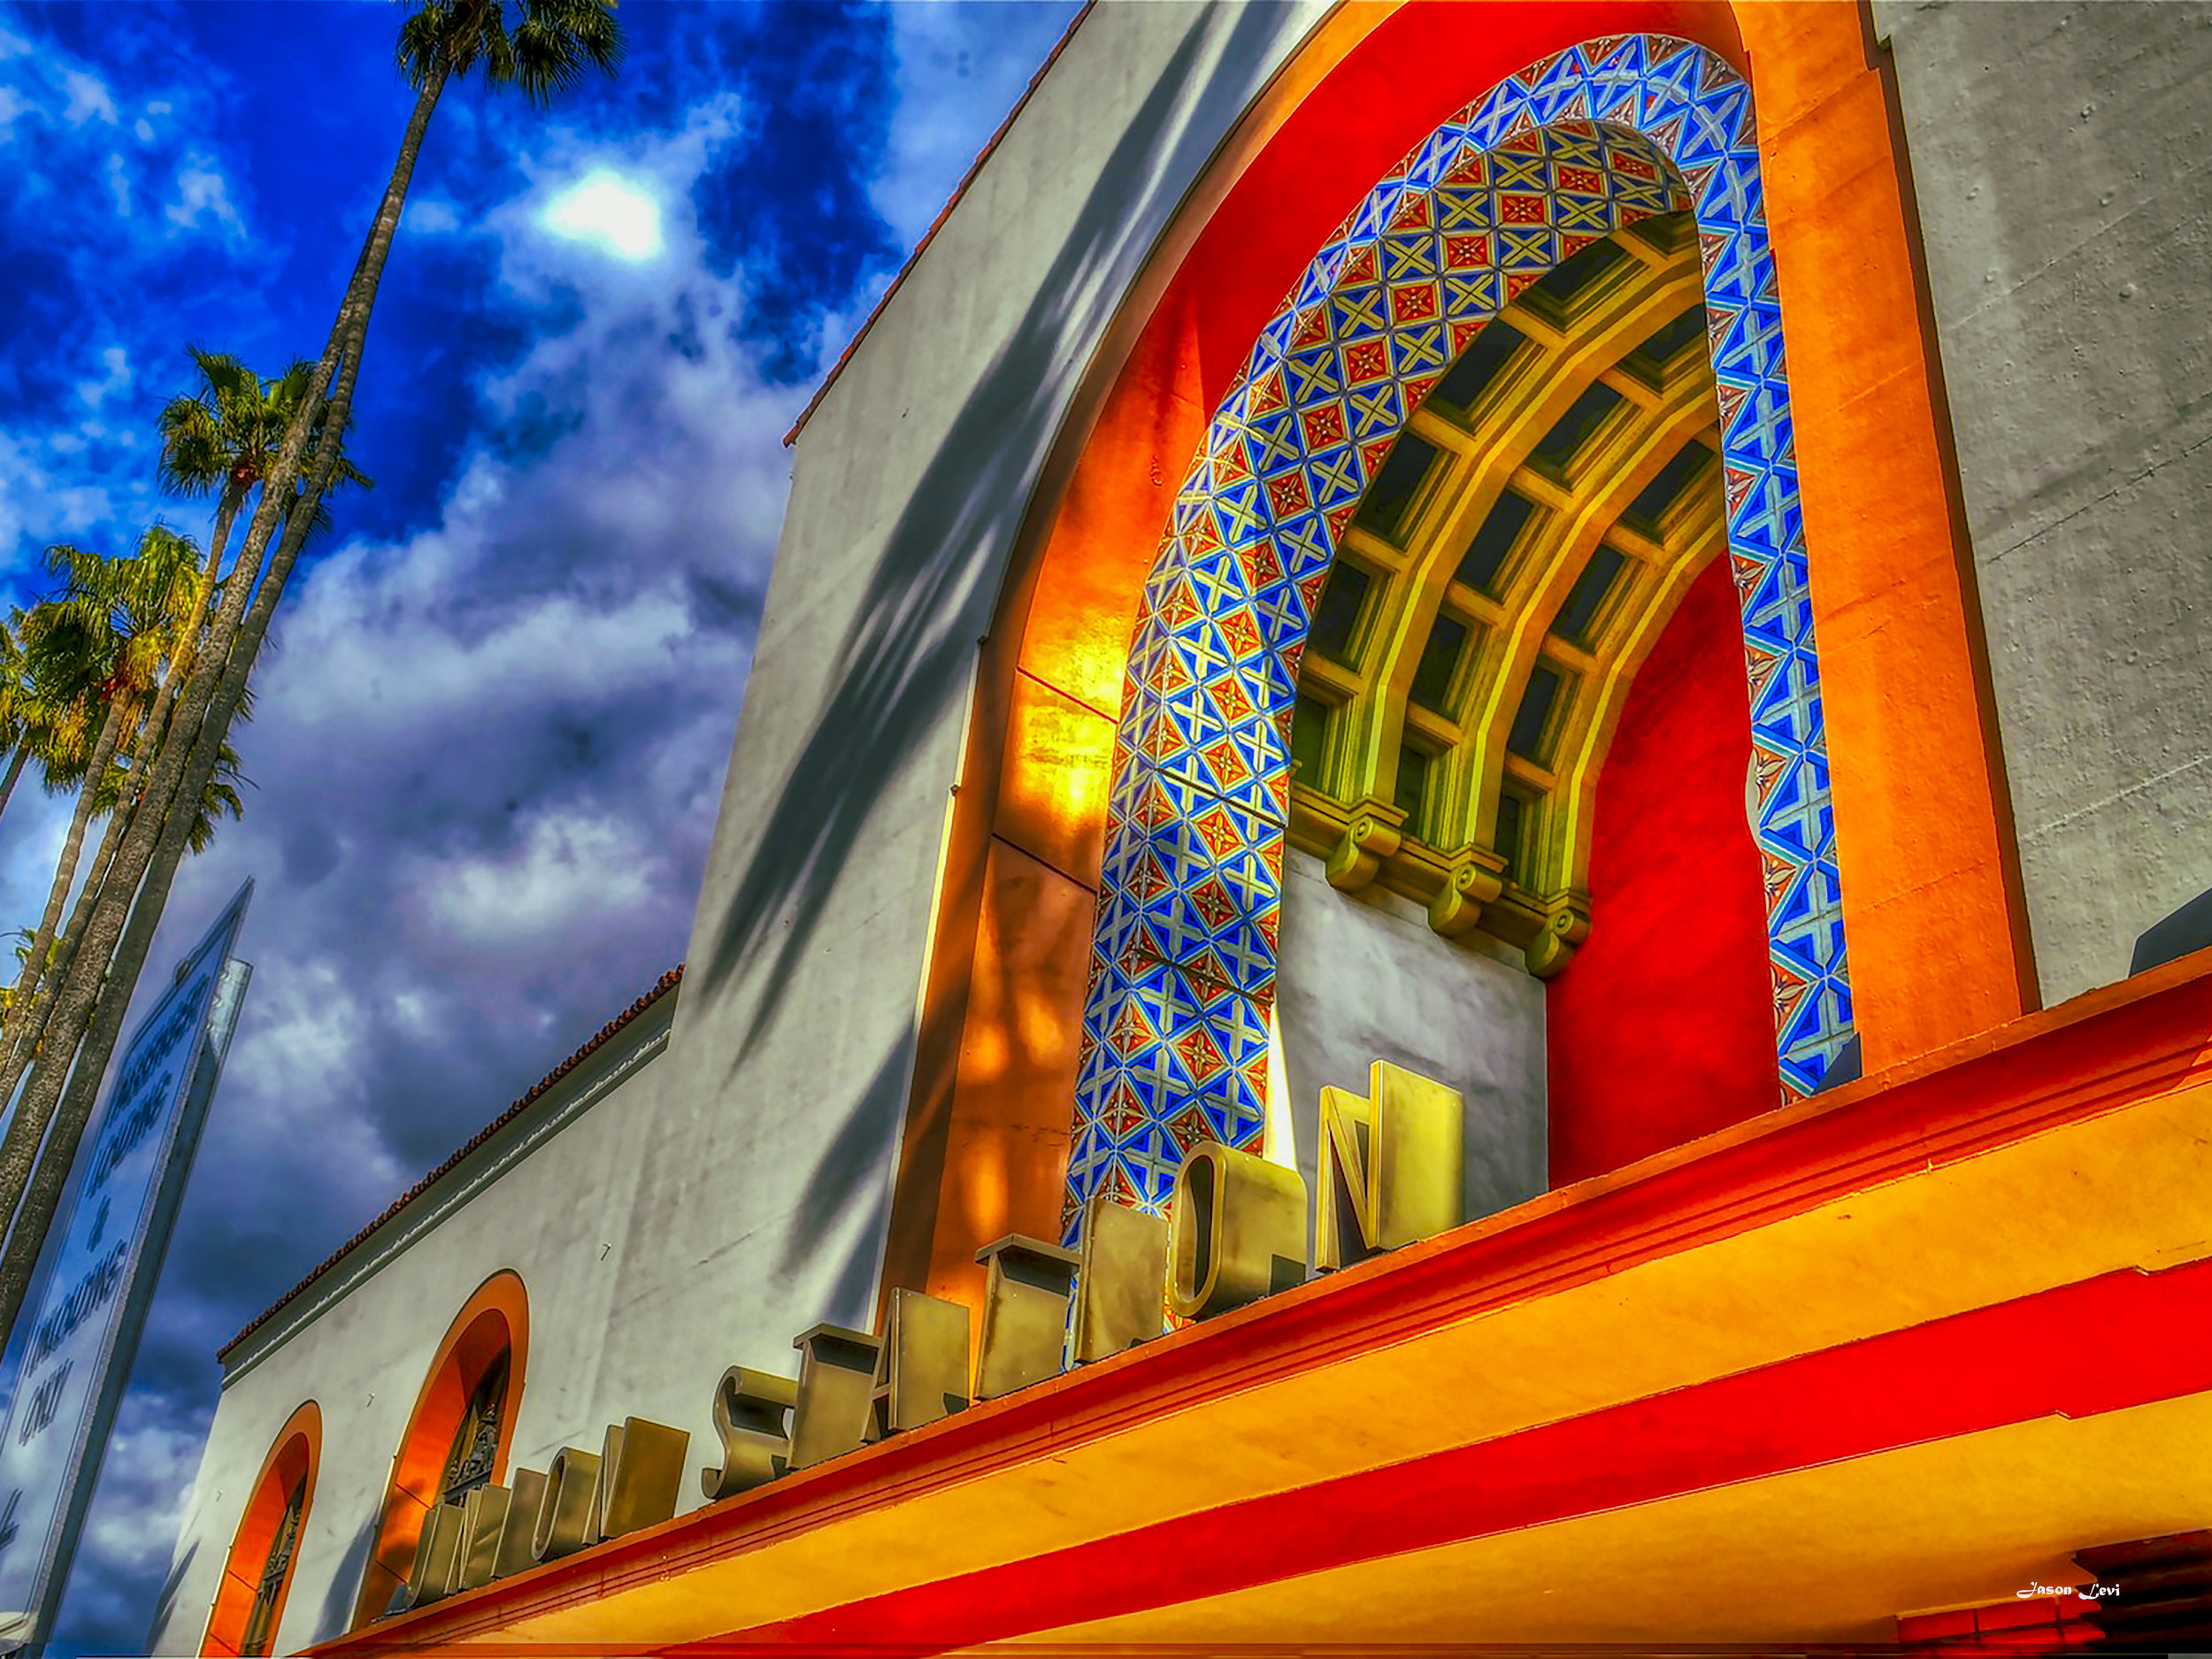 L.A. UNION STATION MARQUEE